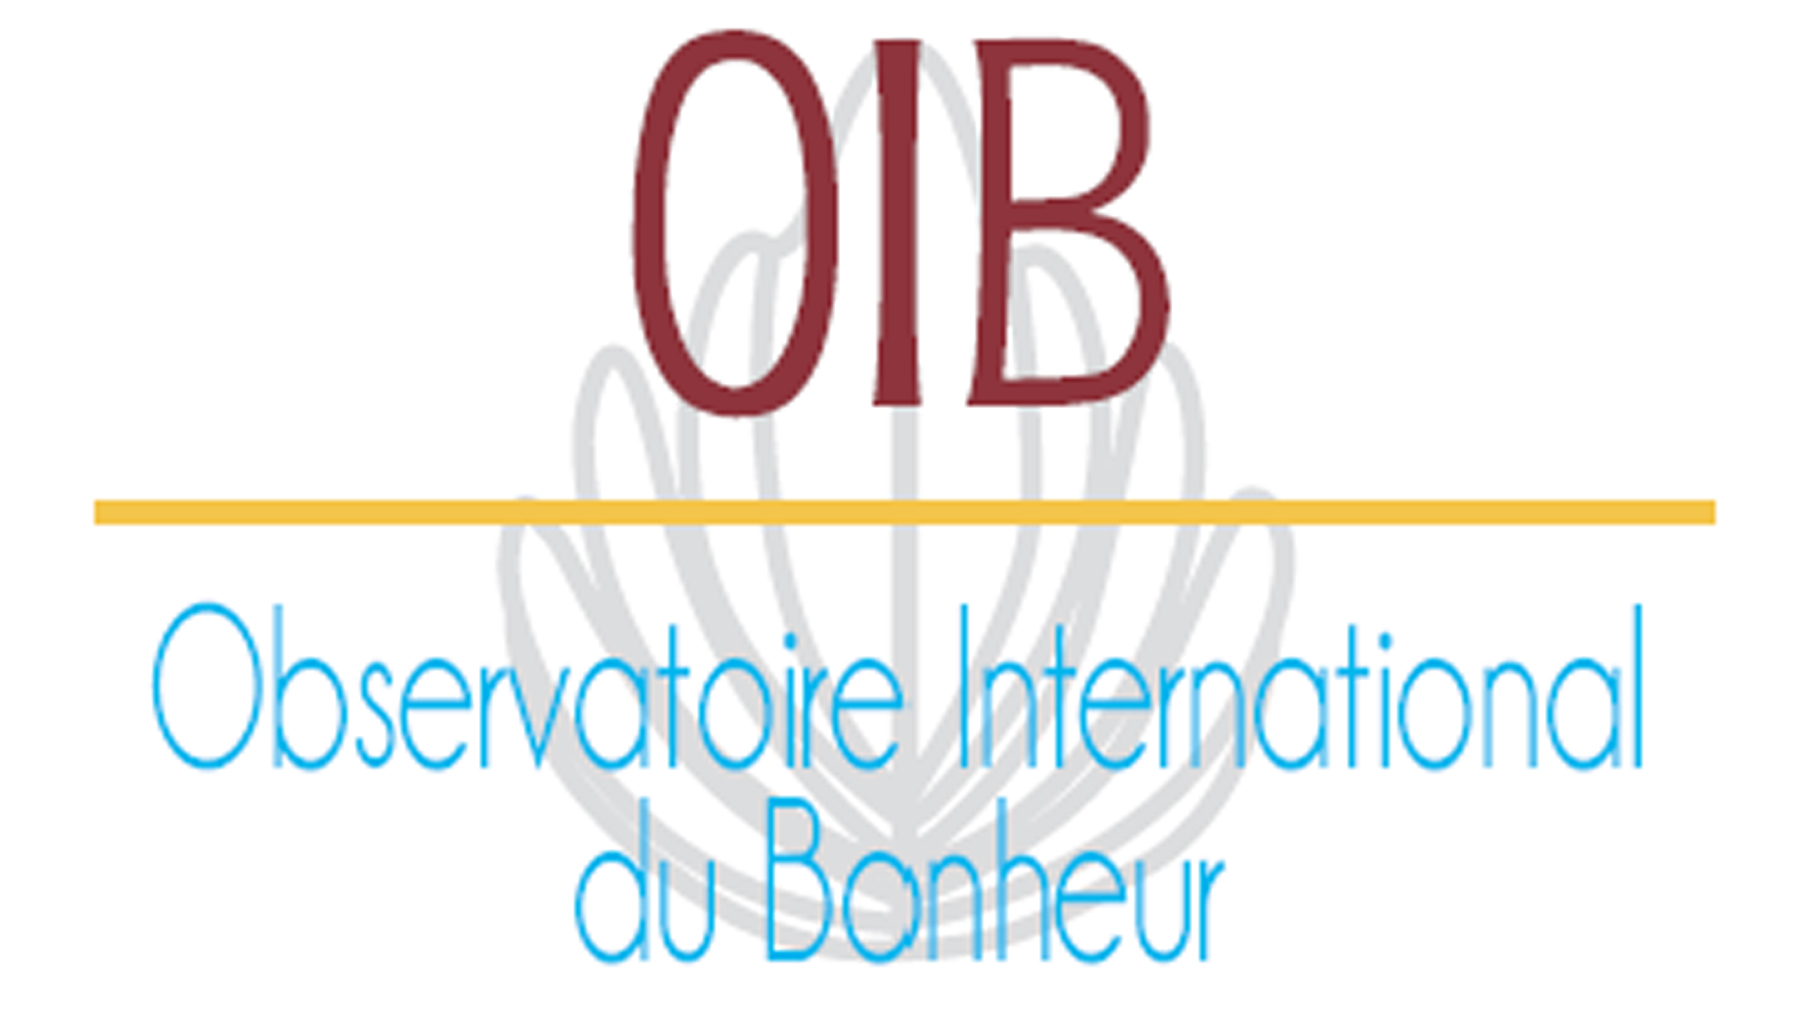 Association Observatoire international du bonheur  (OIB)